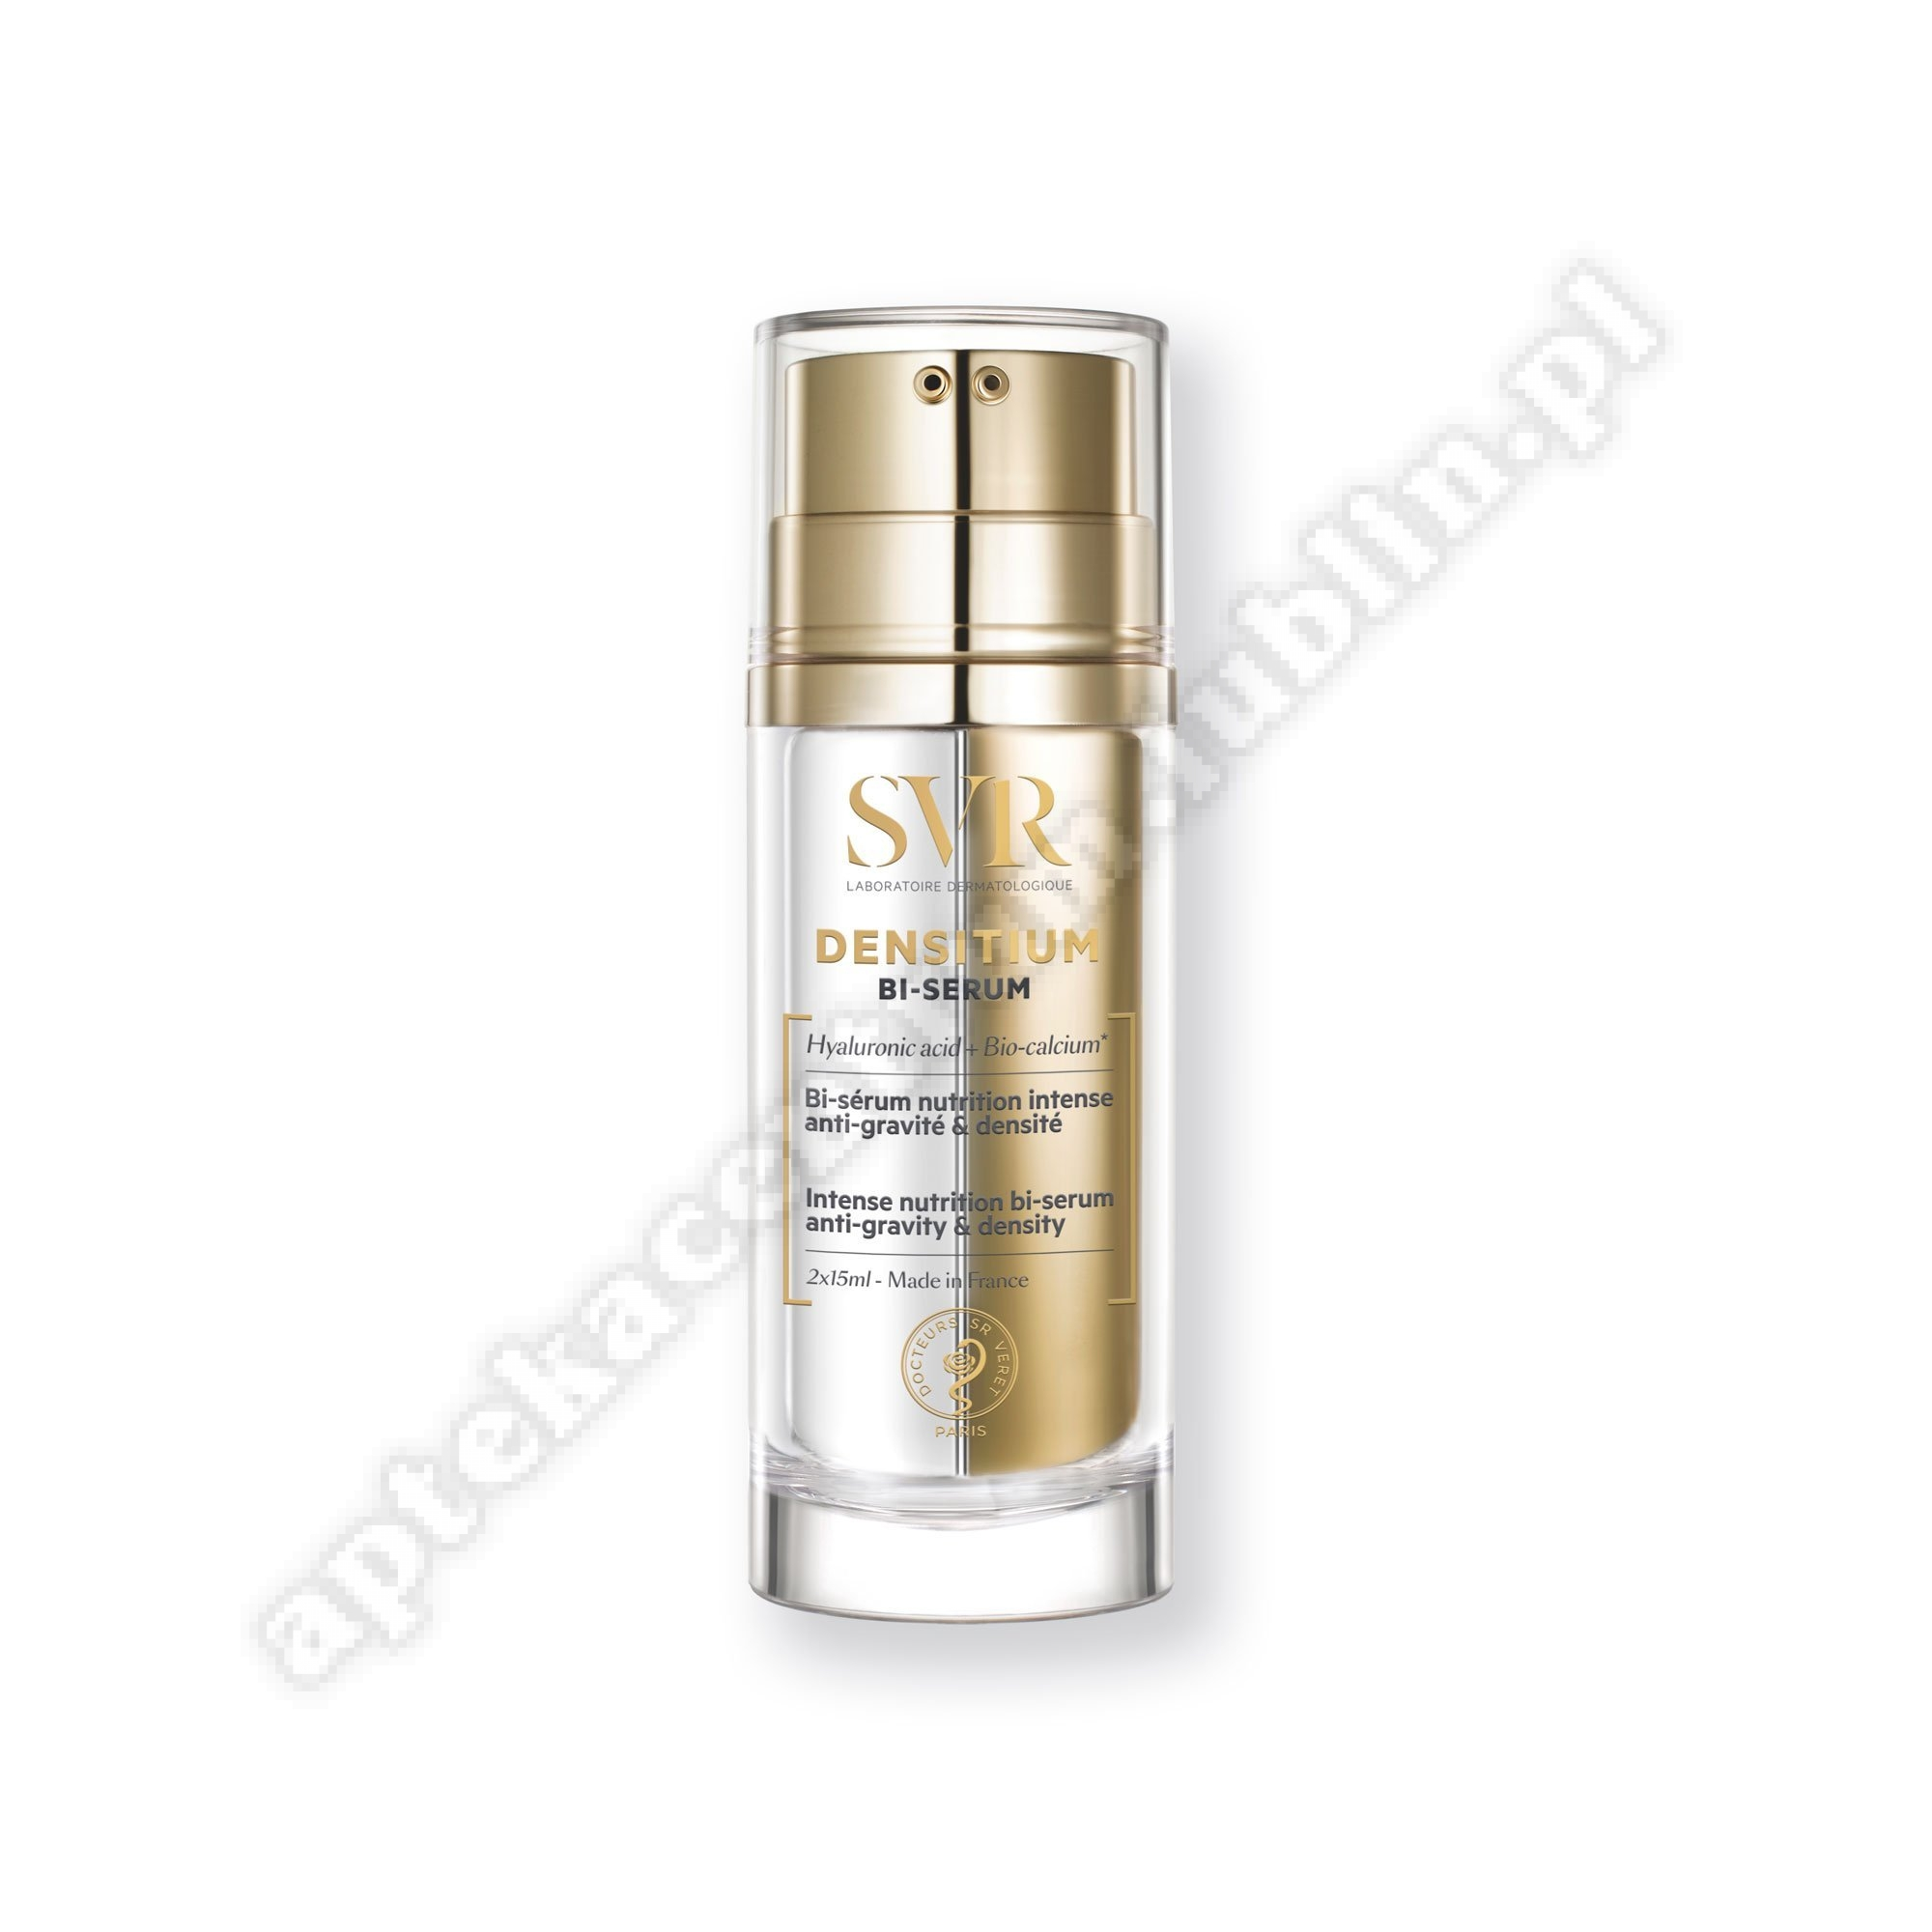 SVR DENSITIUM BI-SERUM 15 ml (+15 ml)